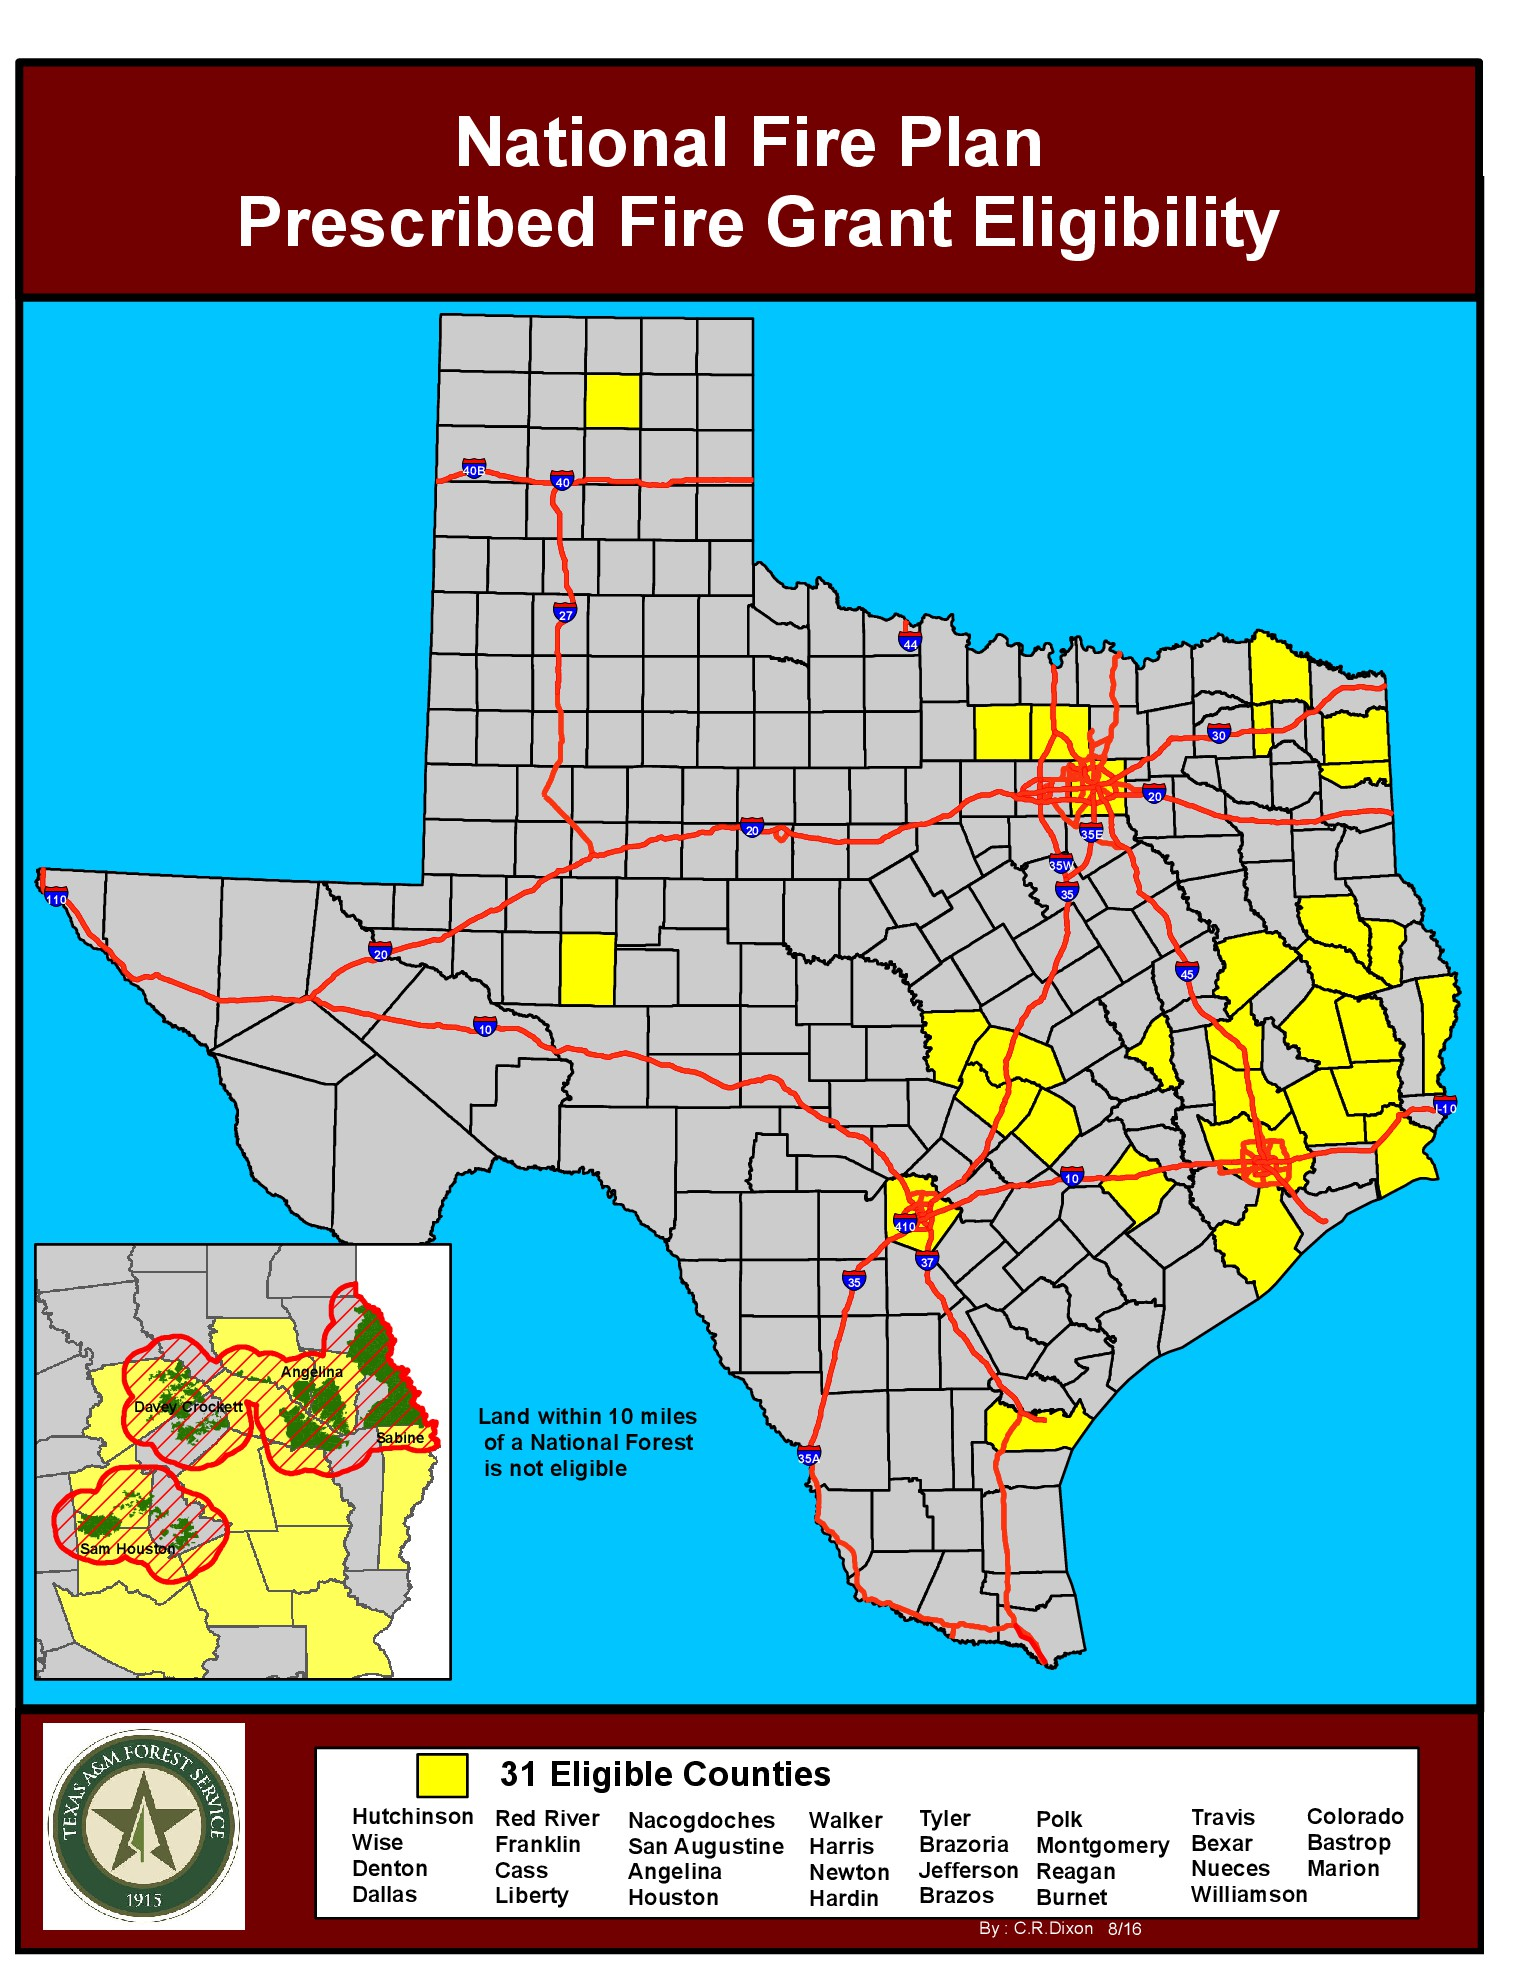 National Fire Plan Grant Eligible Counties